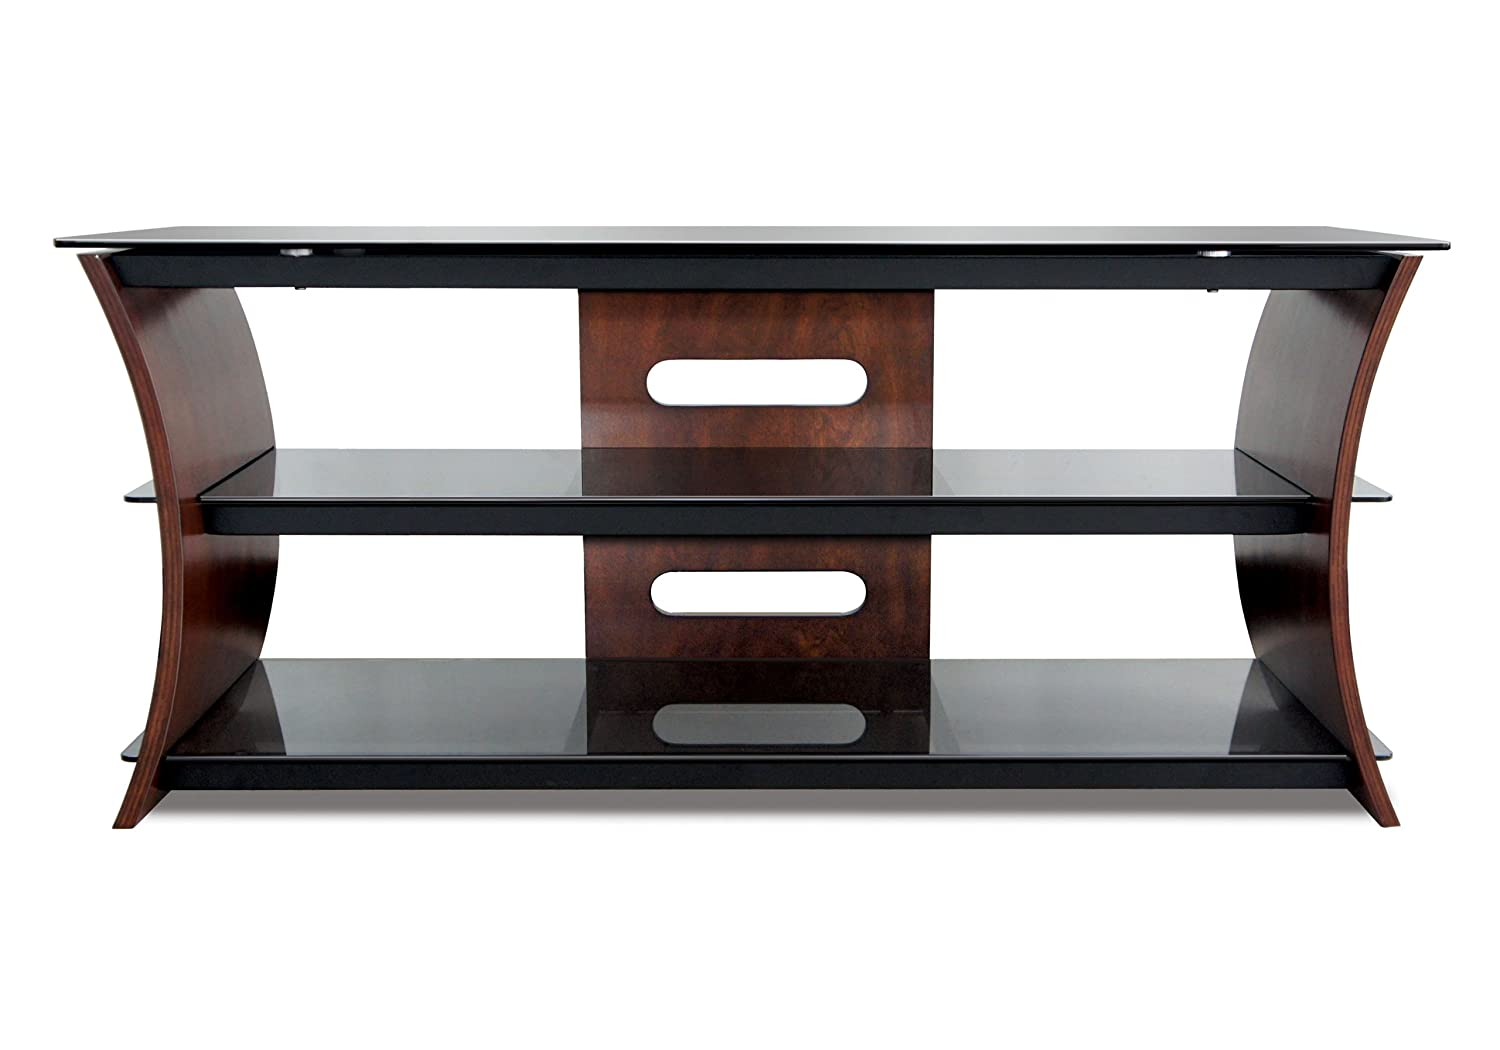 bell o tv stand Amazon.com: Bell'O CW356 56